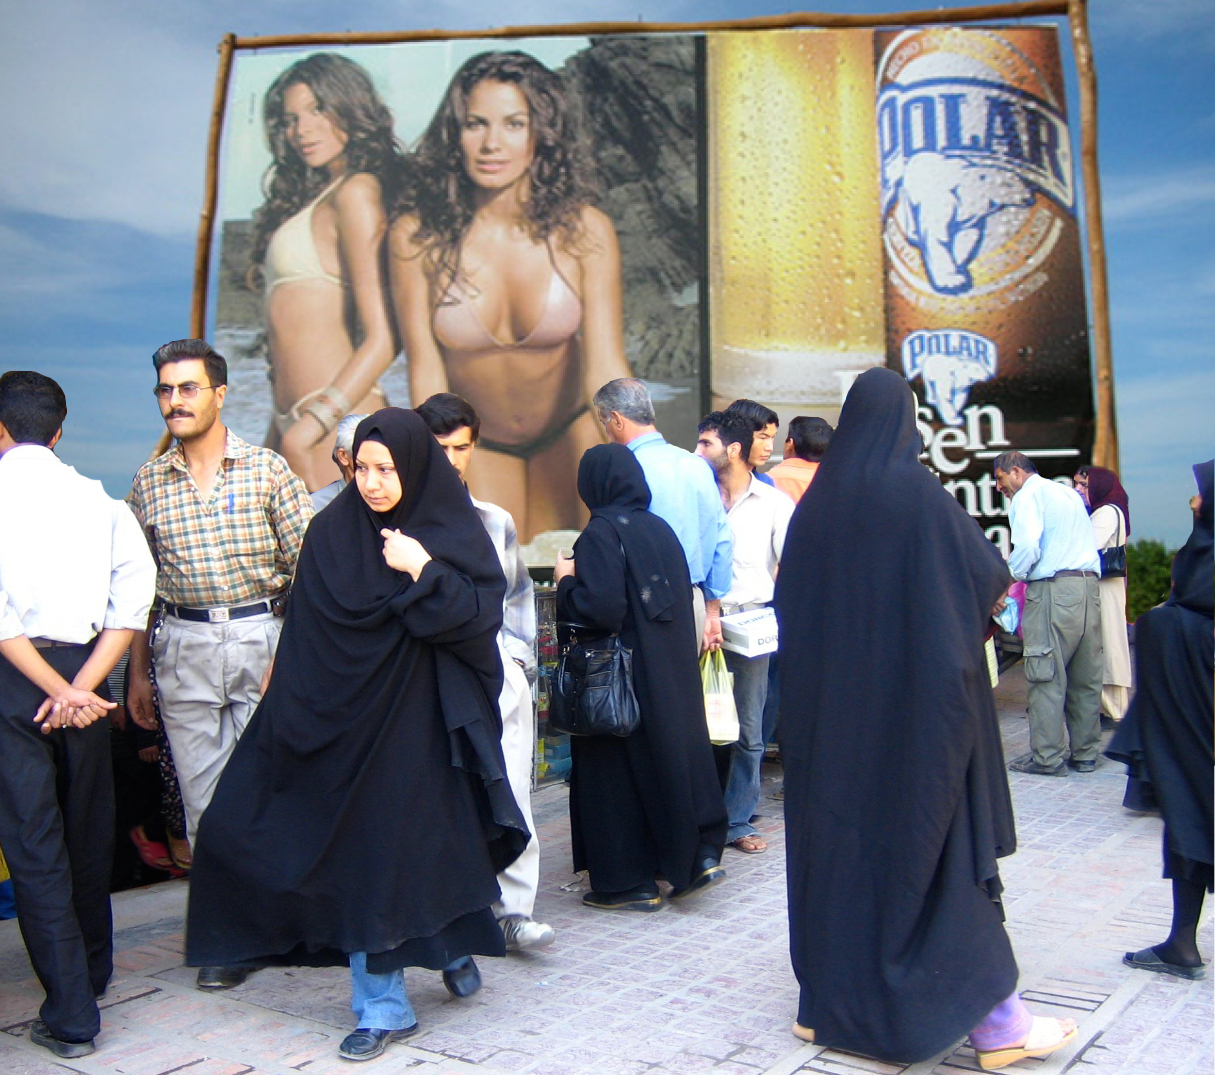 "Bikinis vs Chadors in Venezuela and Iran: ""After acclimatizing to Venezuela, even some of the Iranian women would adopt the more revealing dress style of their Venezuelan peers."" Shiraz street scene photo by Flickr user Gabriel White (CC BY-SA 2.0). Images remixed by Georgia Popplewell."